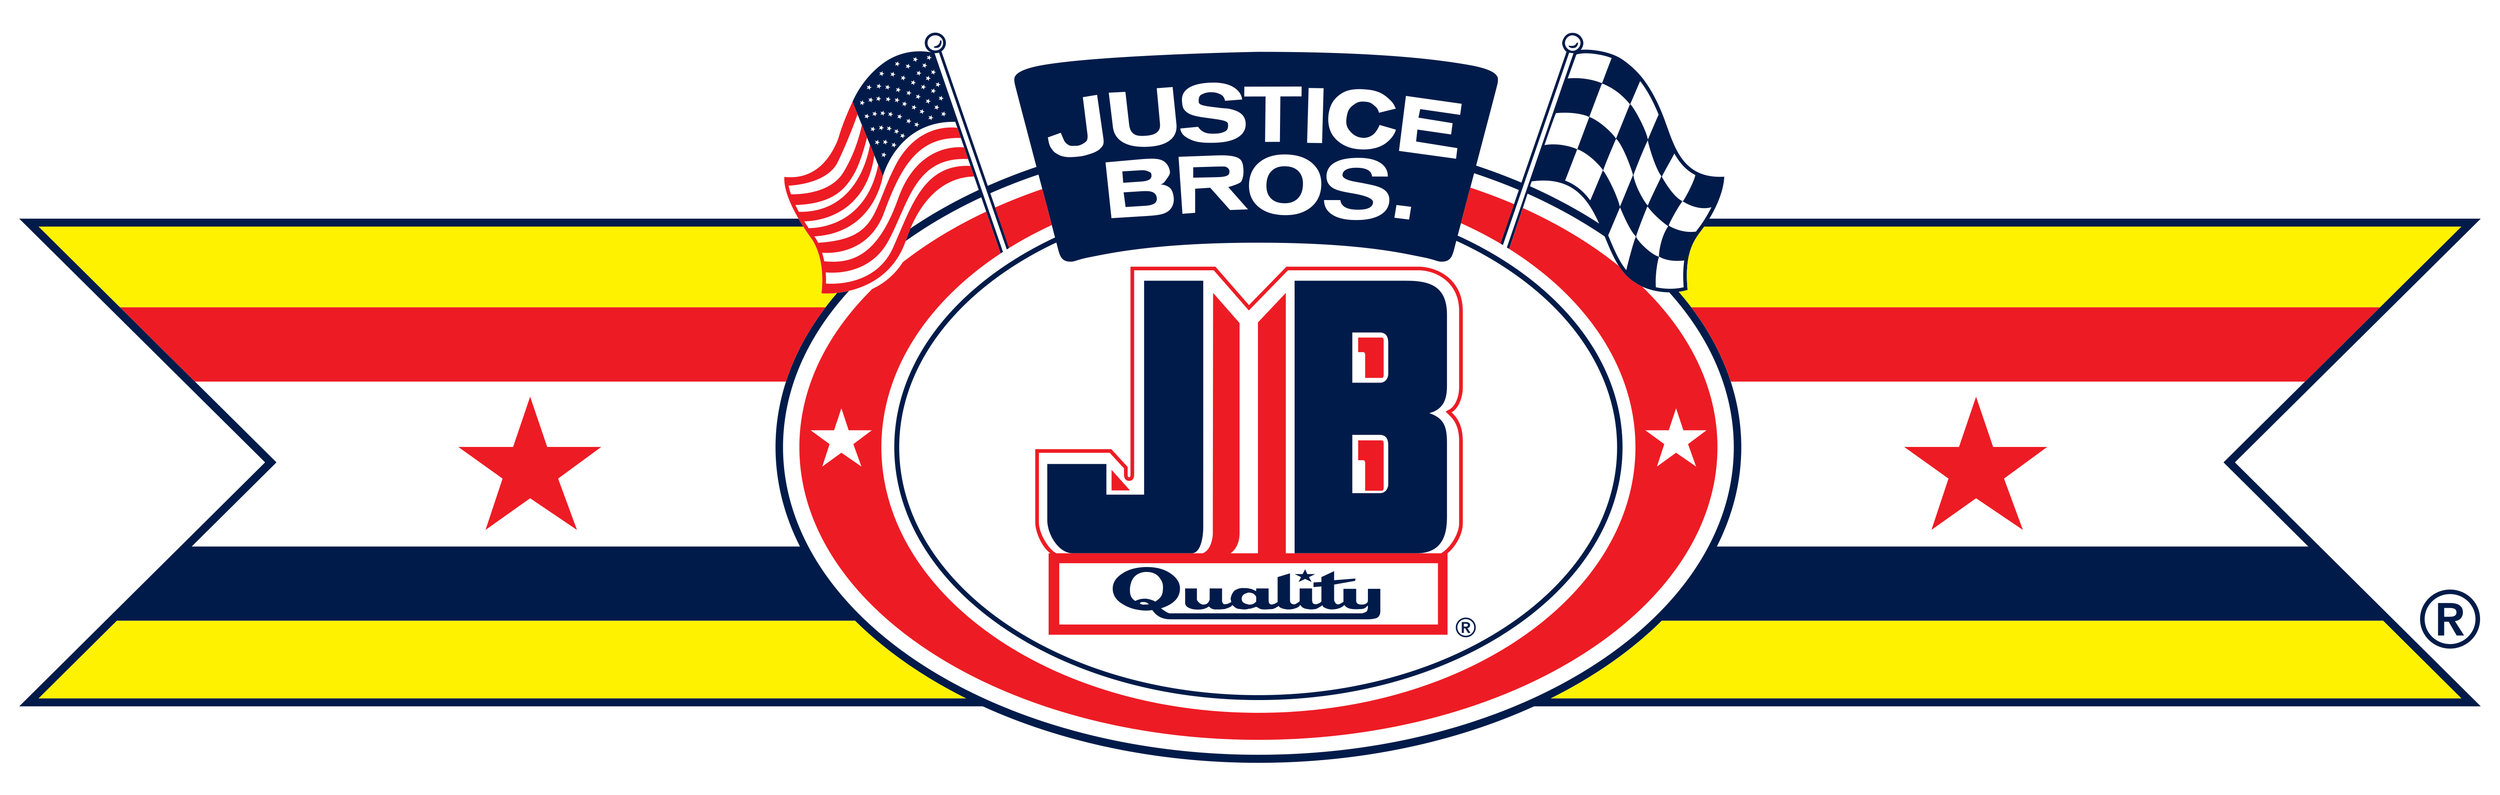 Justice_Brothers_Logo_2016.jpg